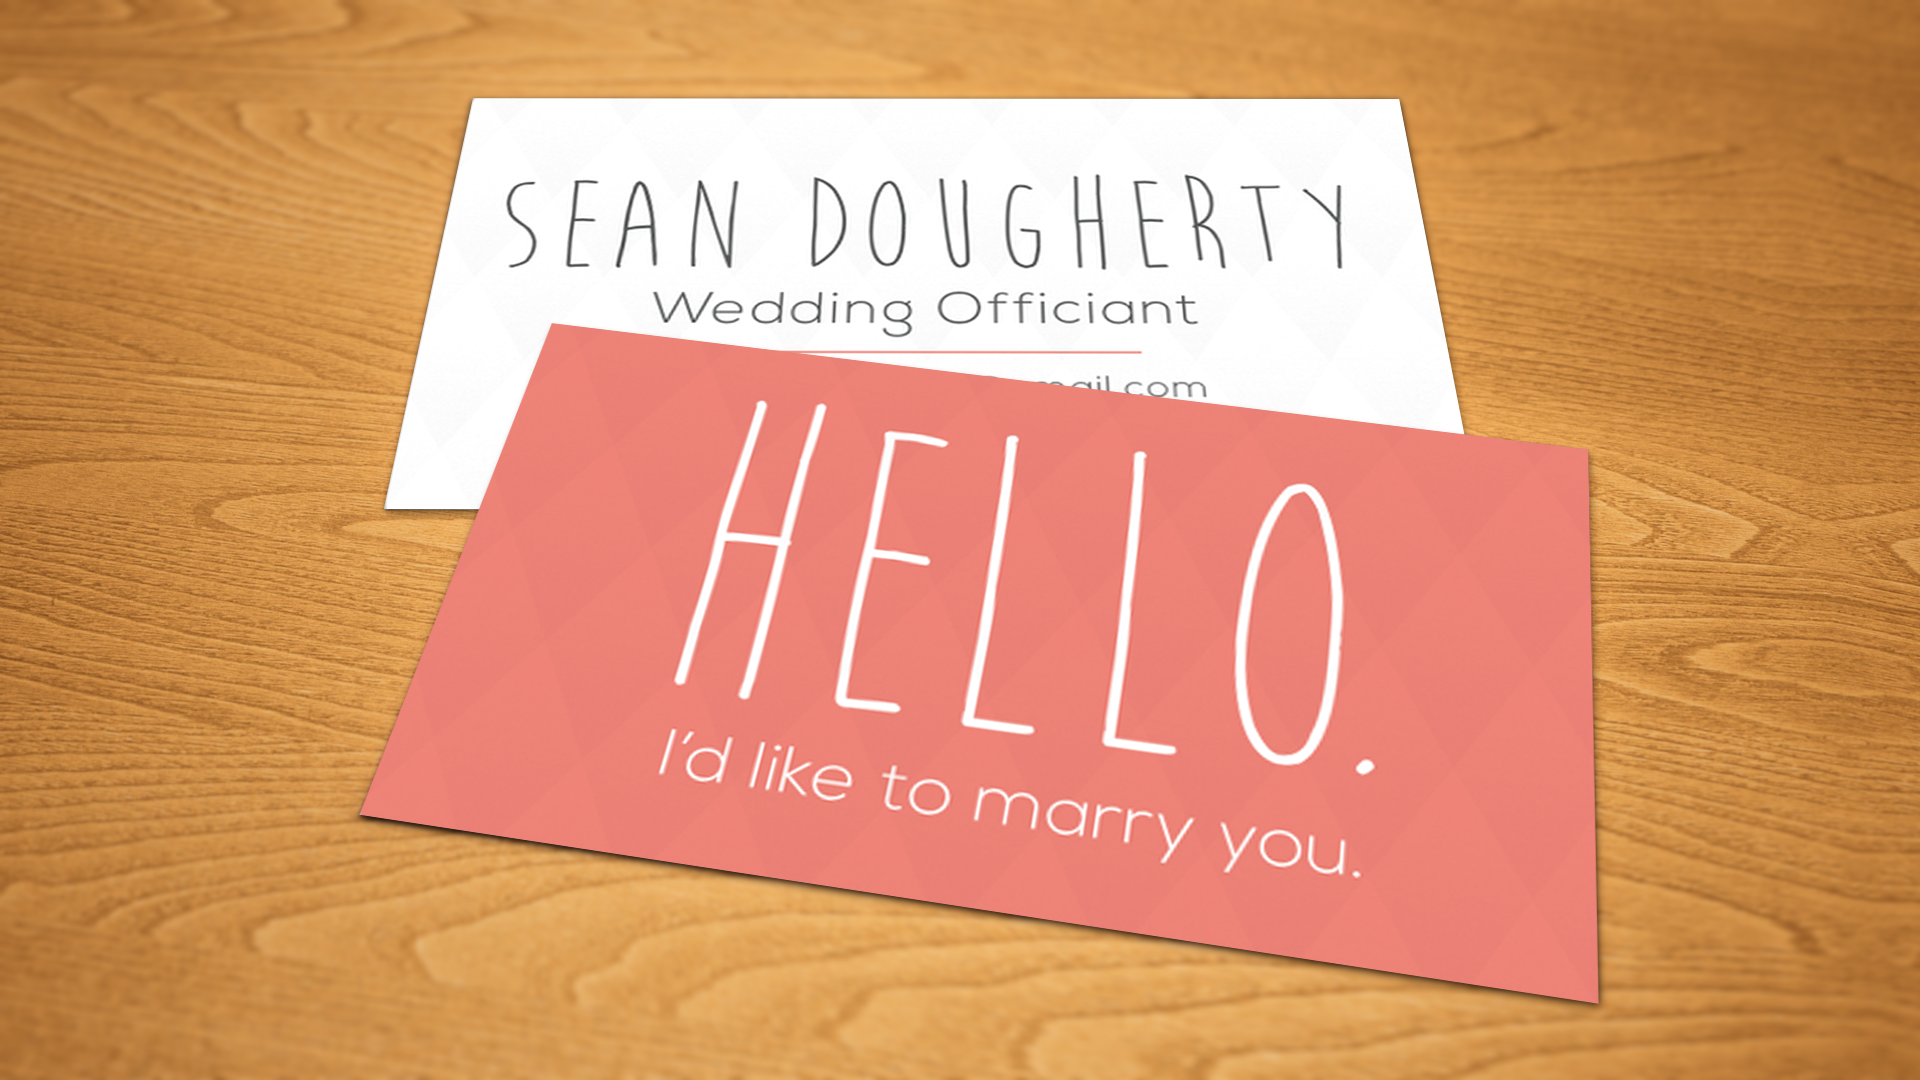 Ordained minister business cards gallery free business cards ordained minister business cards gallery free business cards wedding officiant business card designs wedding o branding magicingreecefo Images